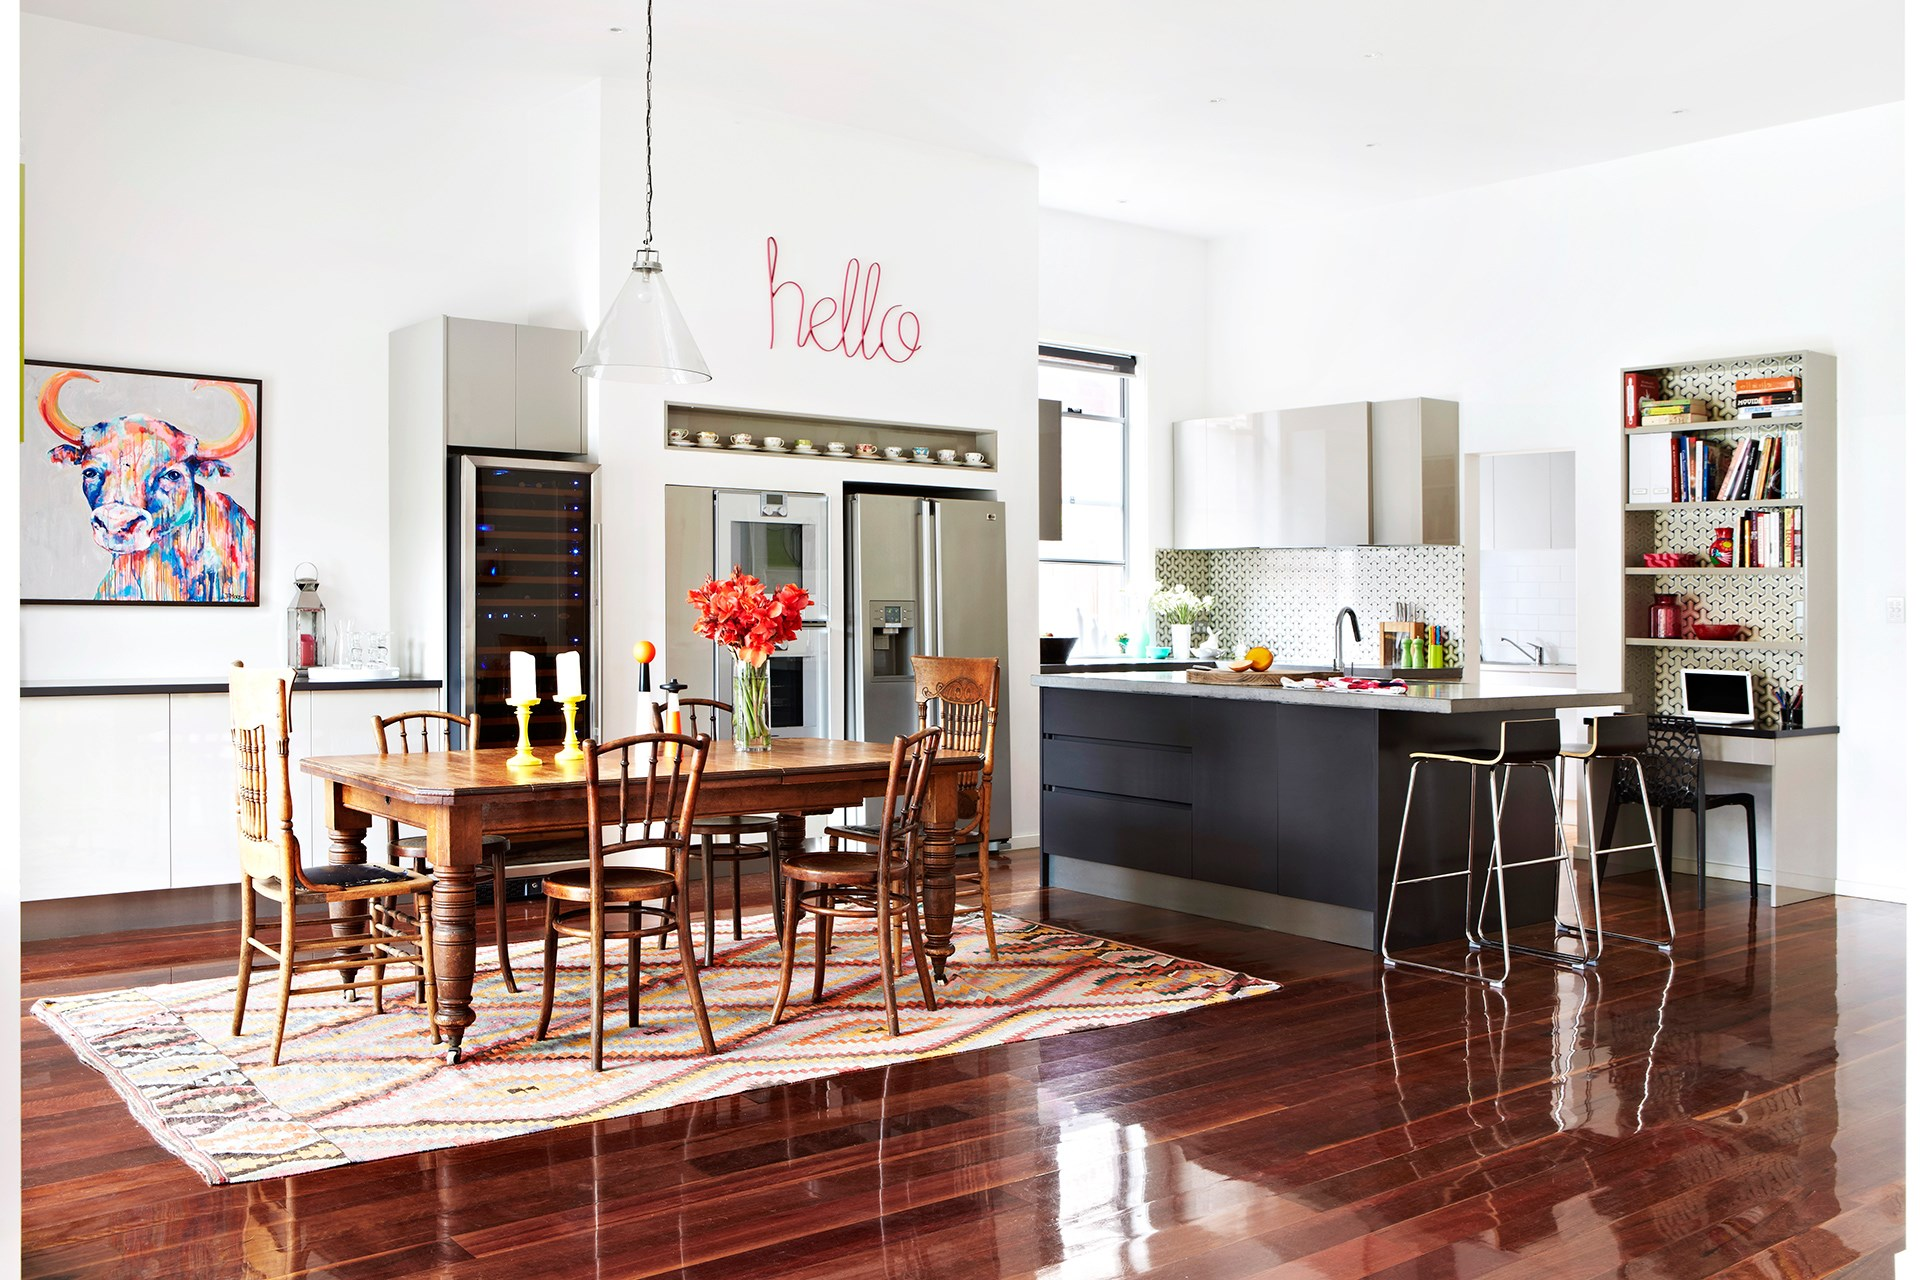 """Make winter cosier with heated floors. [> Check out this elegant Federation renovation with hydronic heating](http://www.homestolove.com.au/georgies-elegant-federation-house-renovation-1693